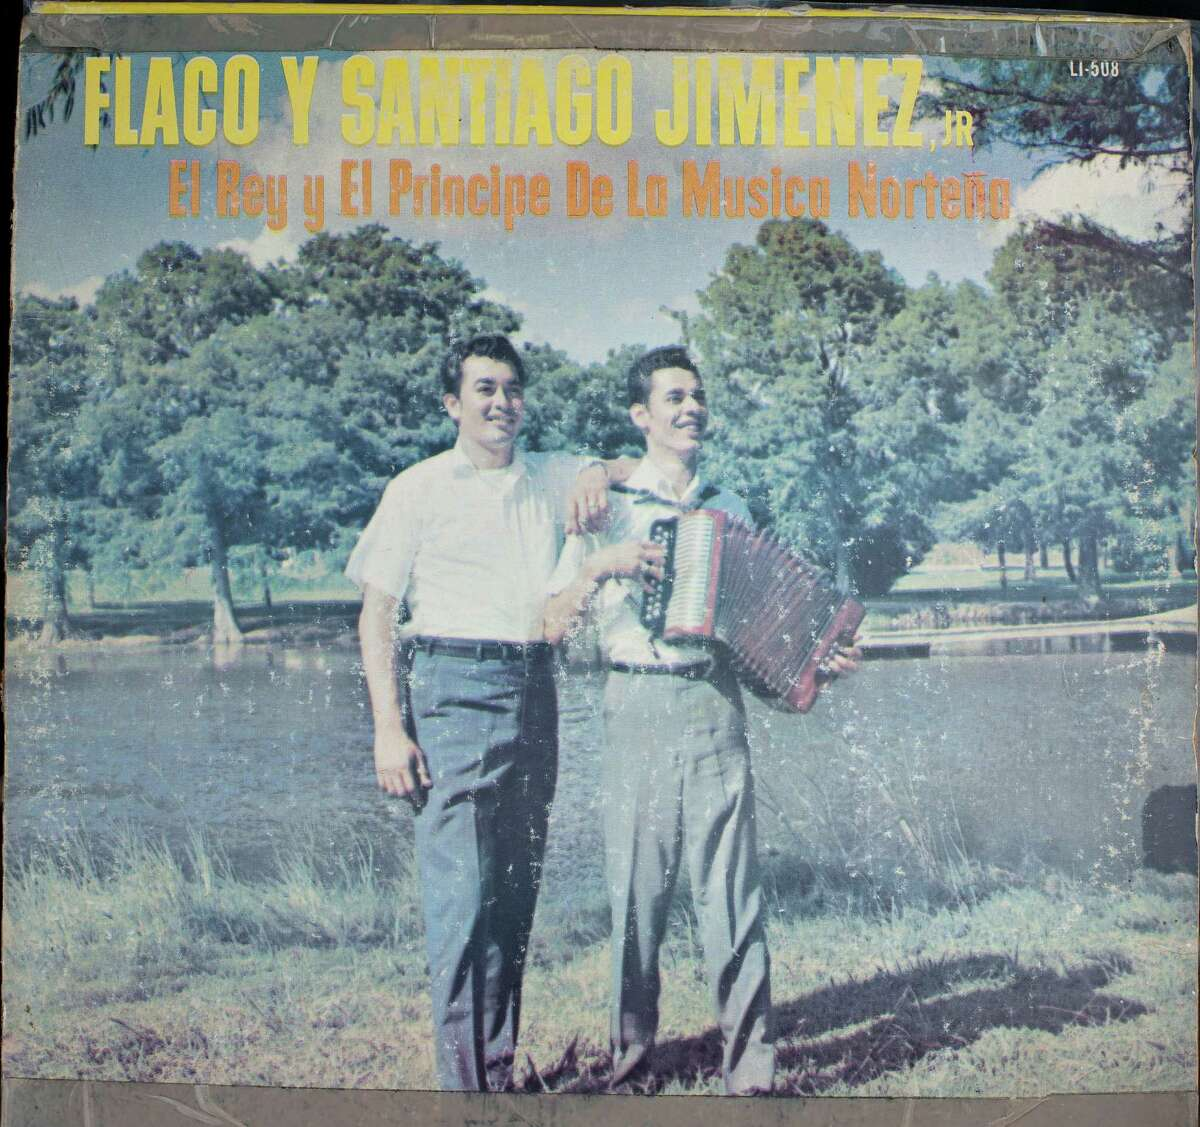 Vintage Flaco and Santiago Jimenez, Jr. album cover photographed Tuesday, May 15, 2012, at Woodlawn Lake in San Antonio.